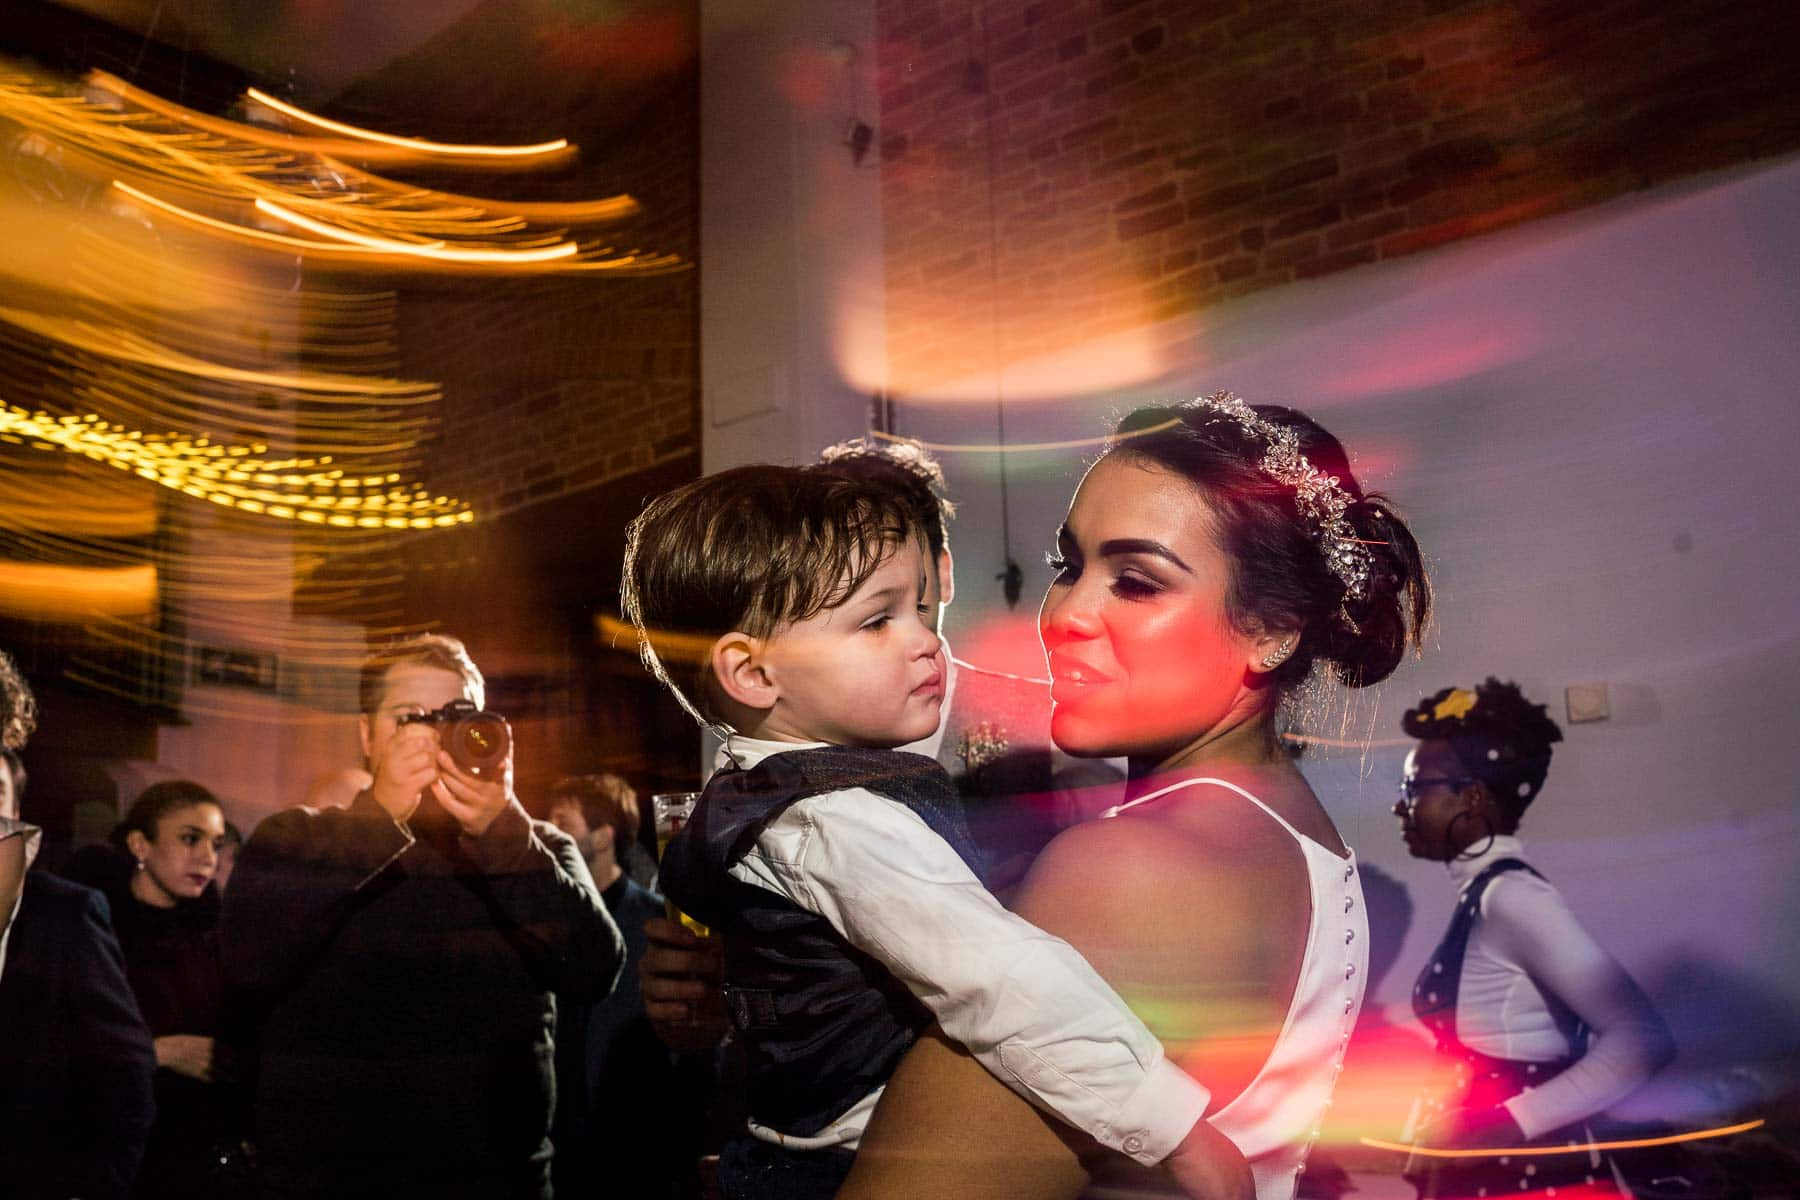 bride and son embrace on the dance floor